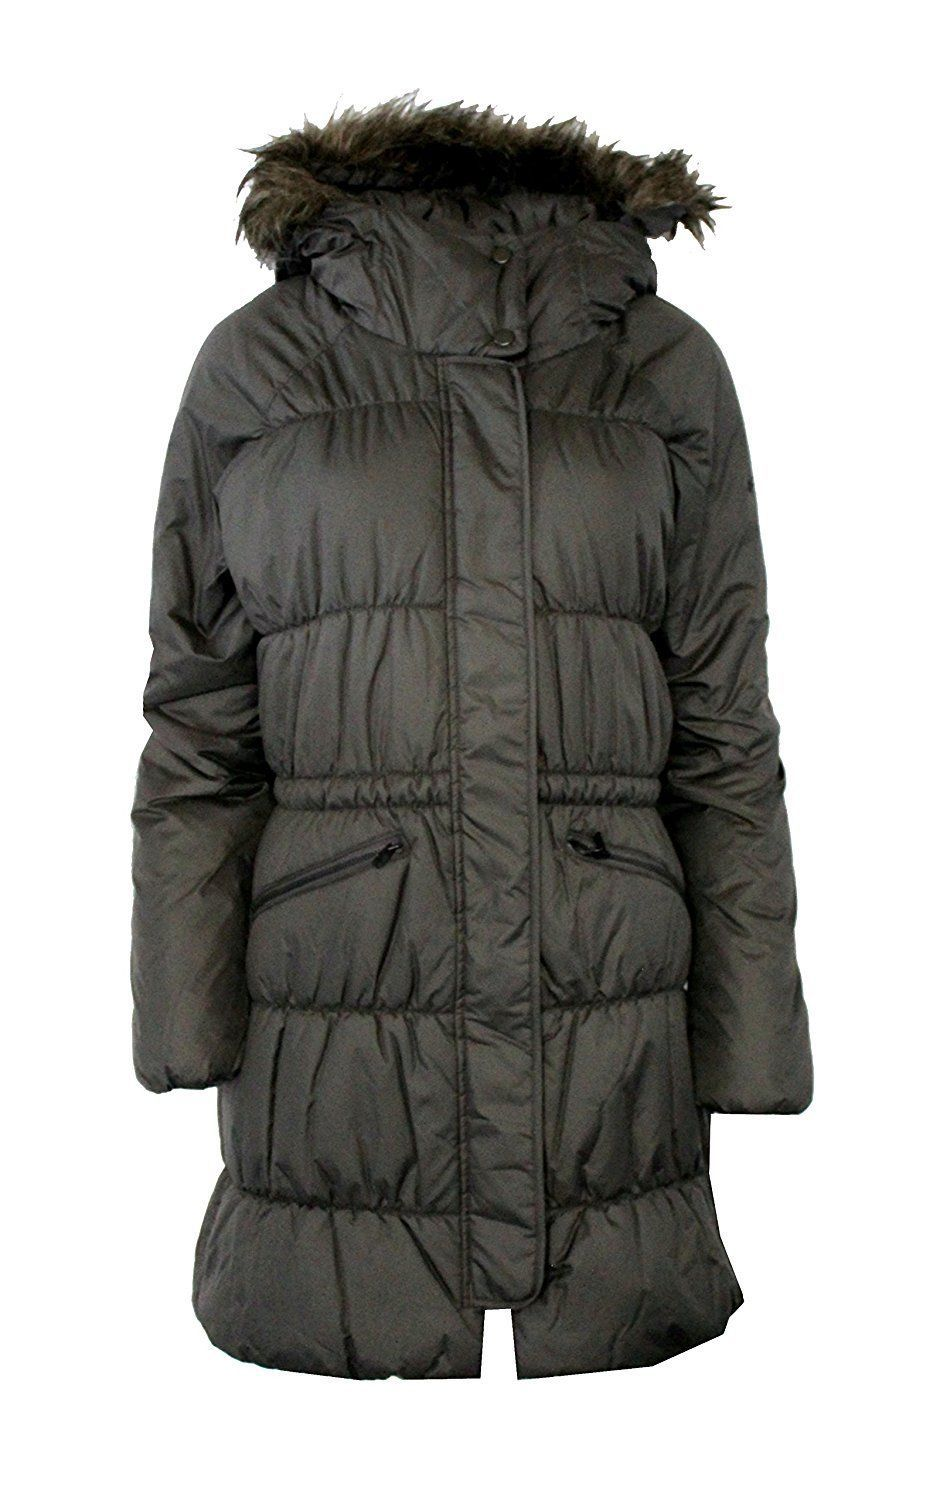 NWT Columbia XL  SPARKS LAKE LONG Insulated Women's Jacket Fur Hood GREY $220 - $172.96